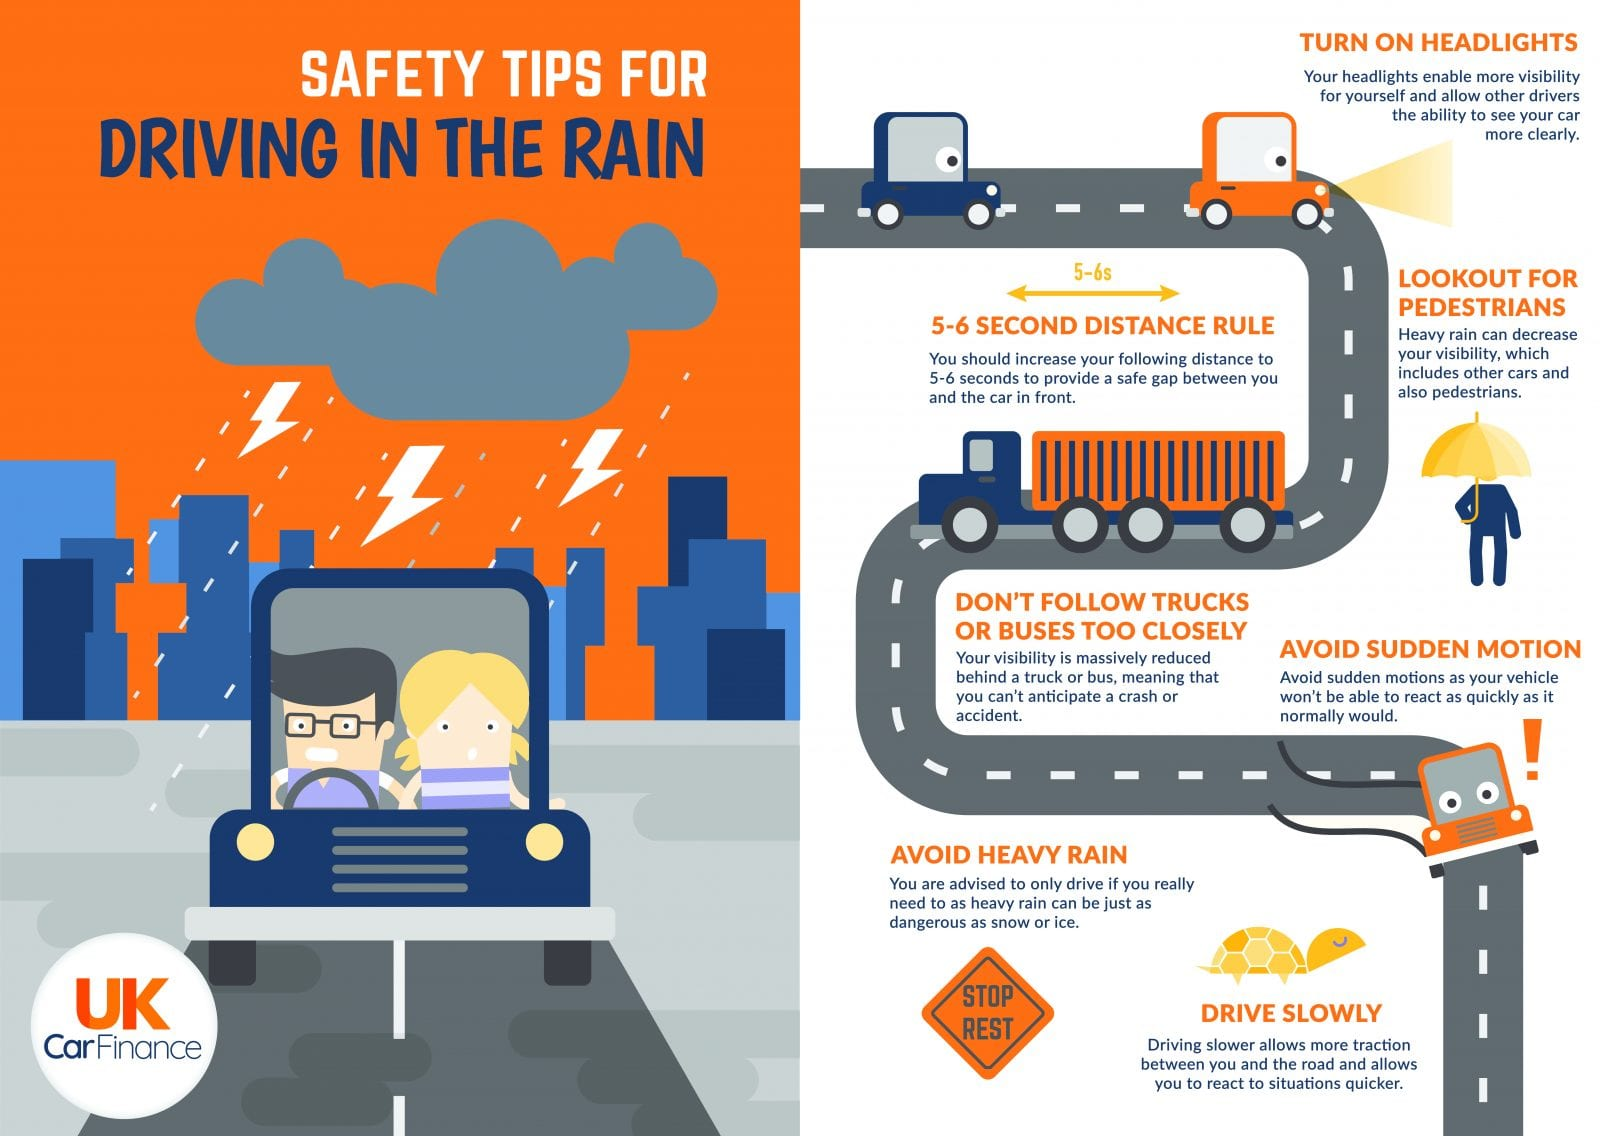 UK Car Finance - safety tips for driving in the rain